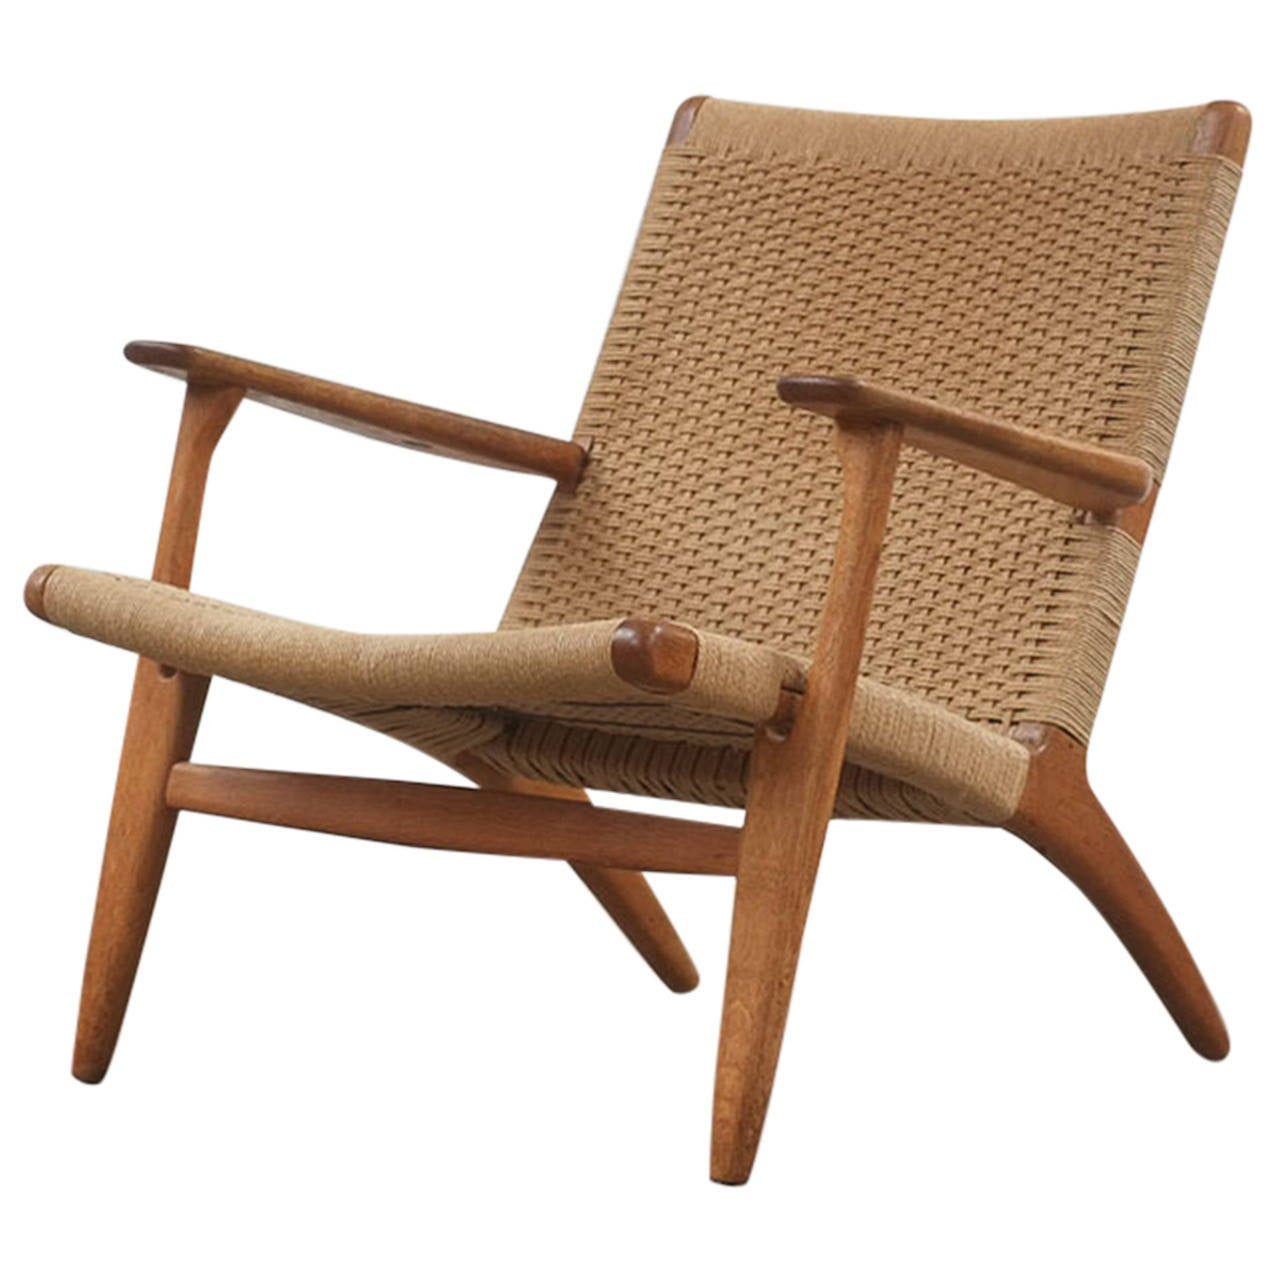 hans wegner the chair kids baseball ch25 at 1stdibs